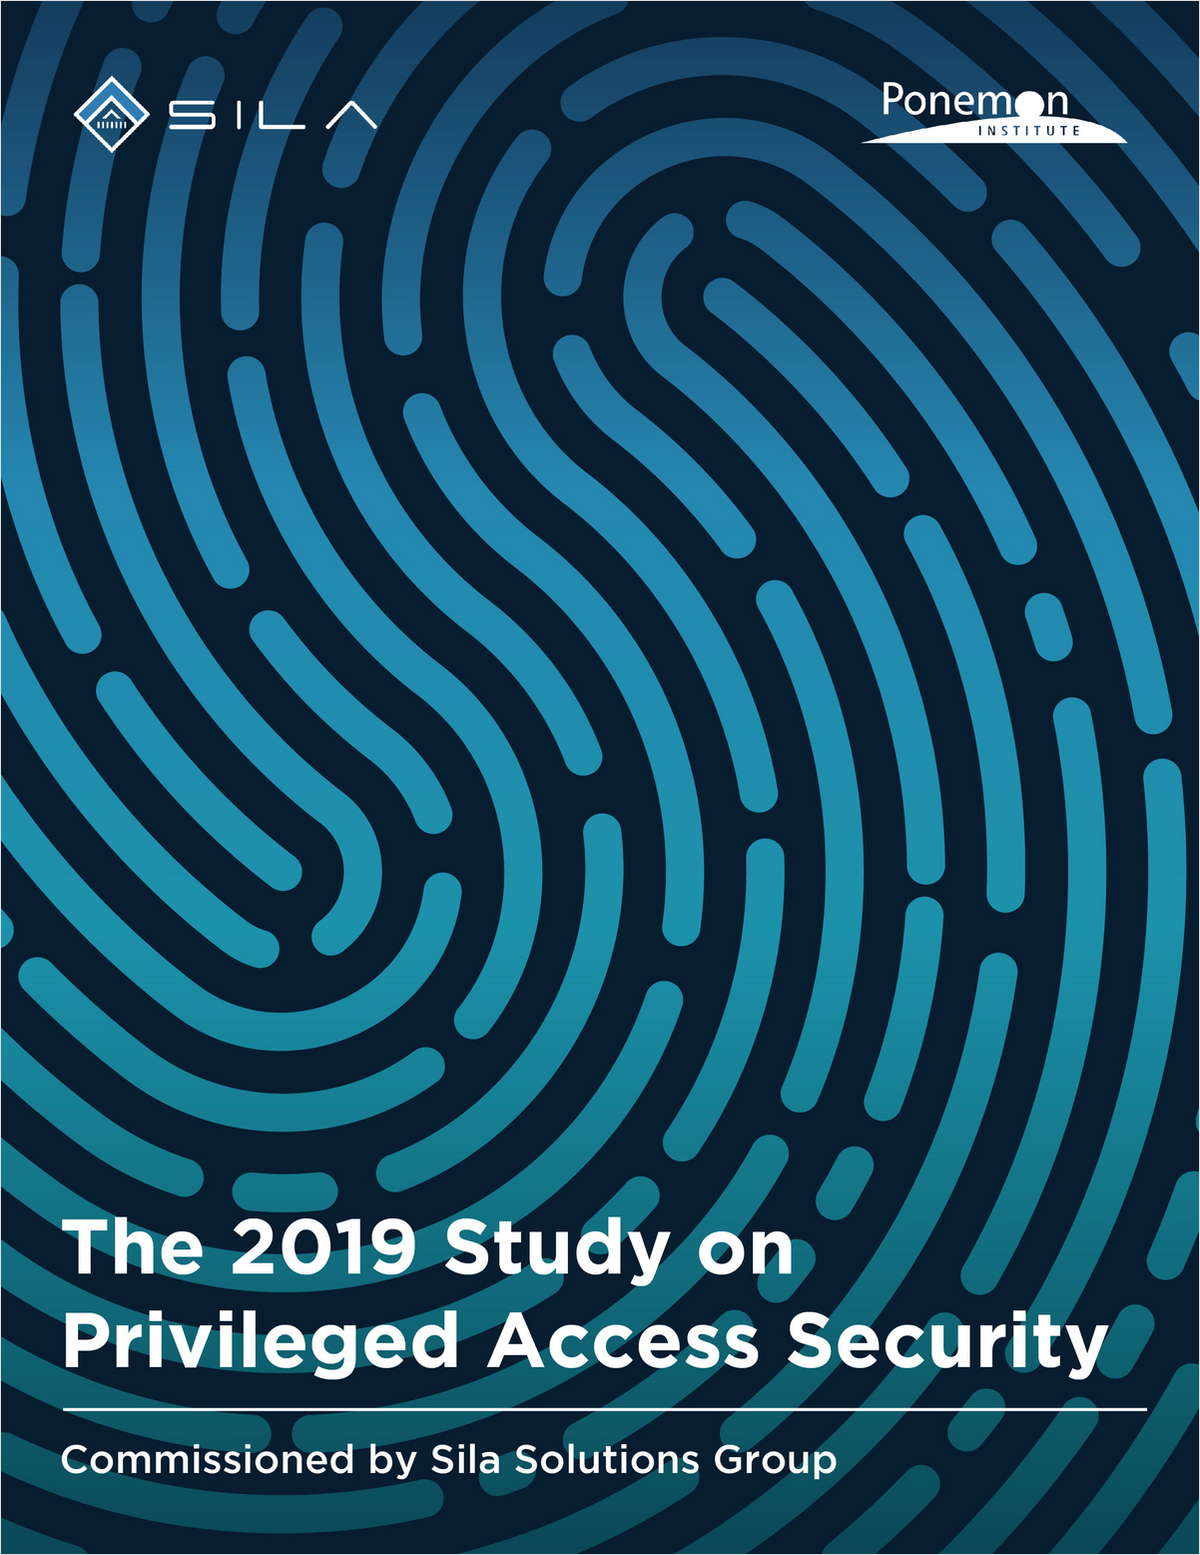 The 2019 Study on Privileged Access Security Report